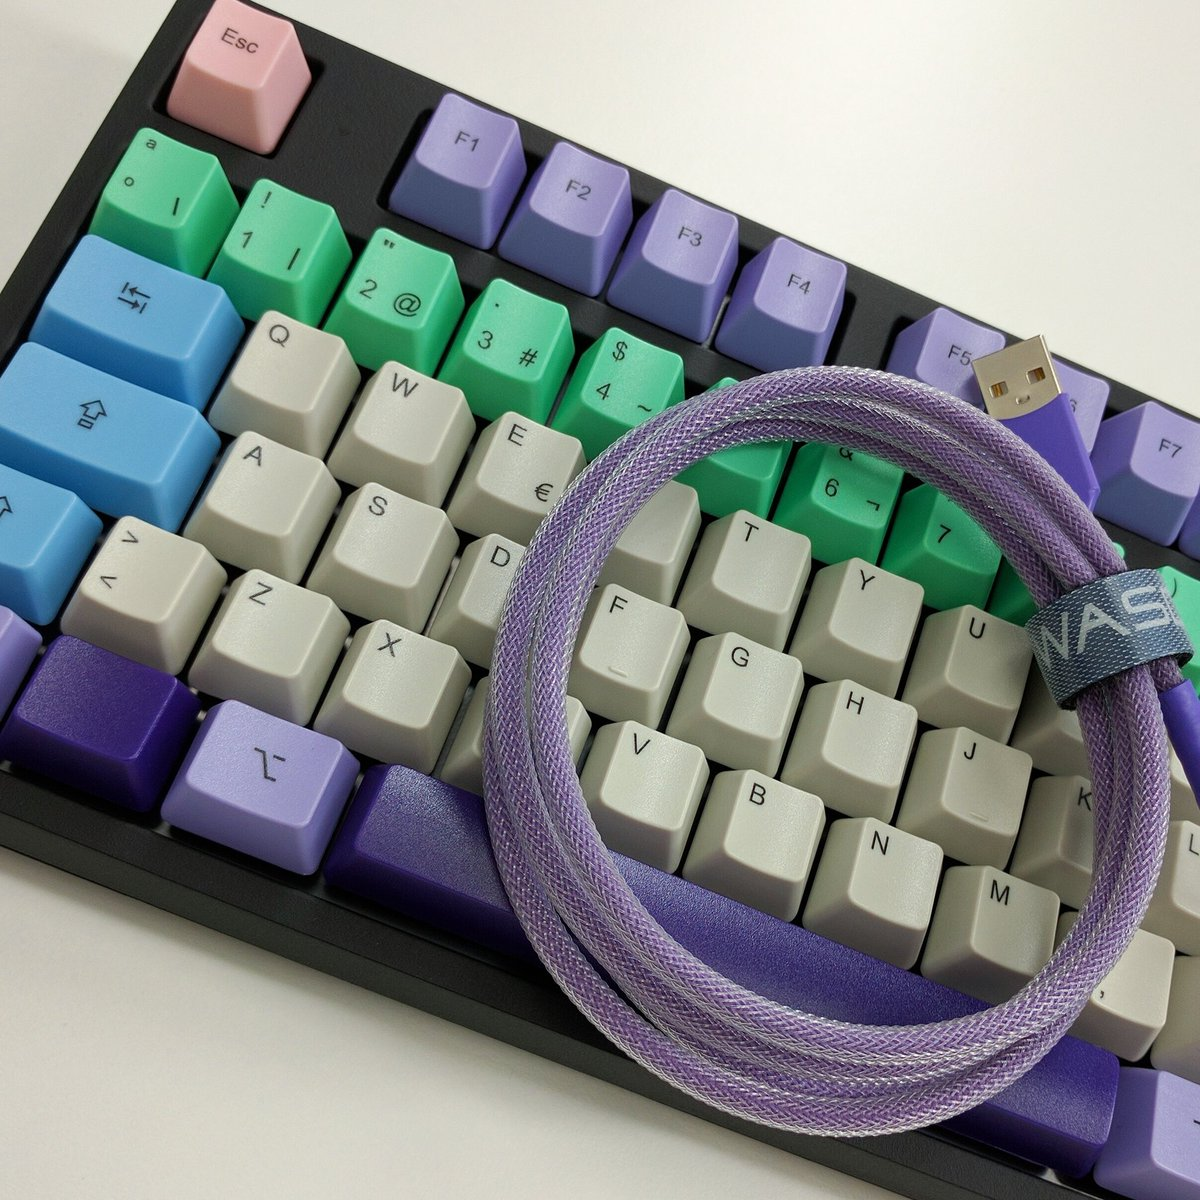 Wasd Keyboards On Twitter Spanishsymbols With Matching Cable